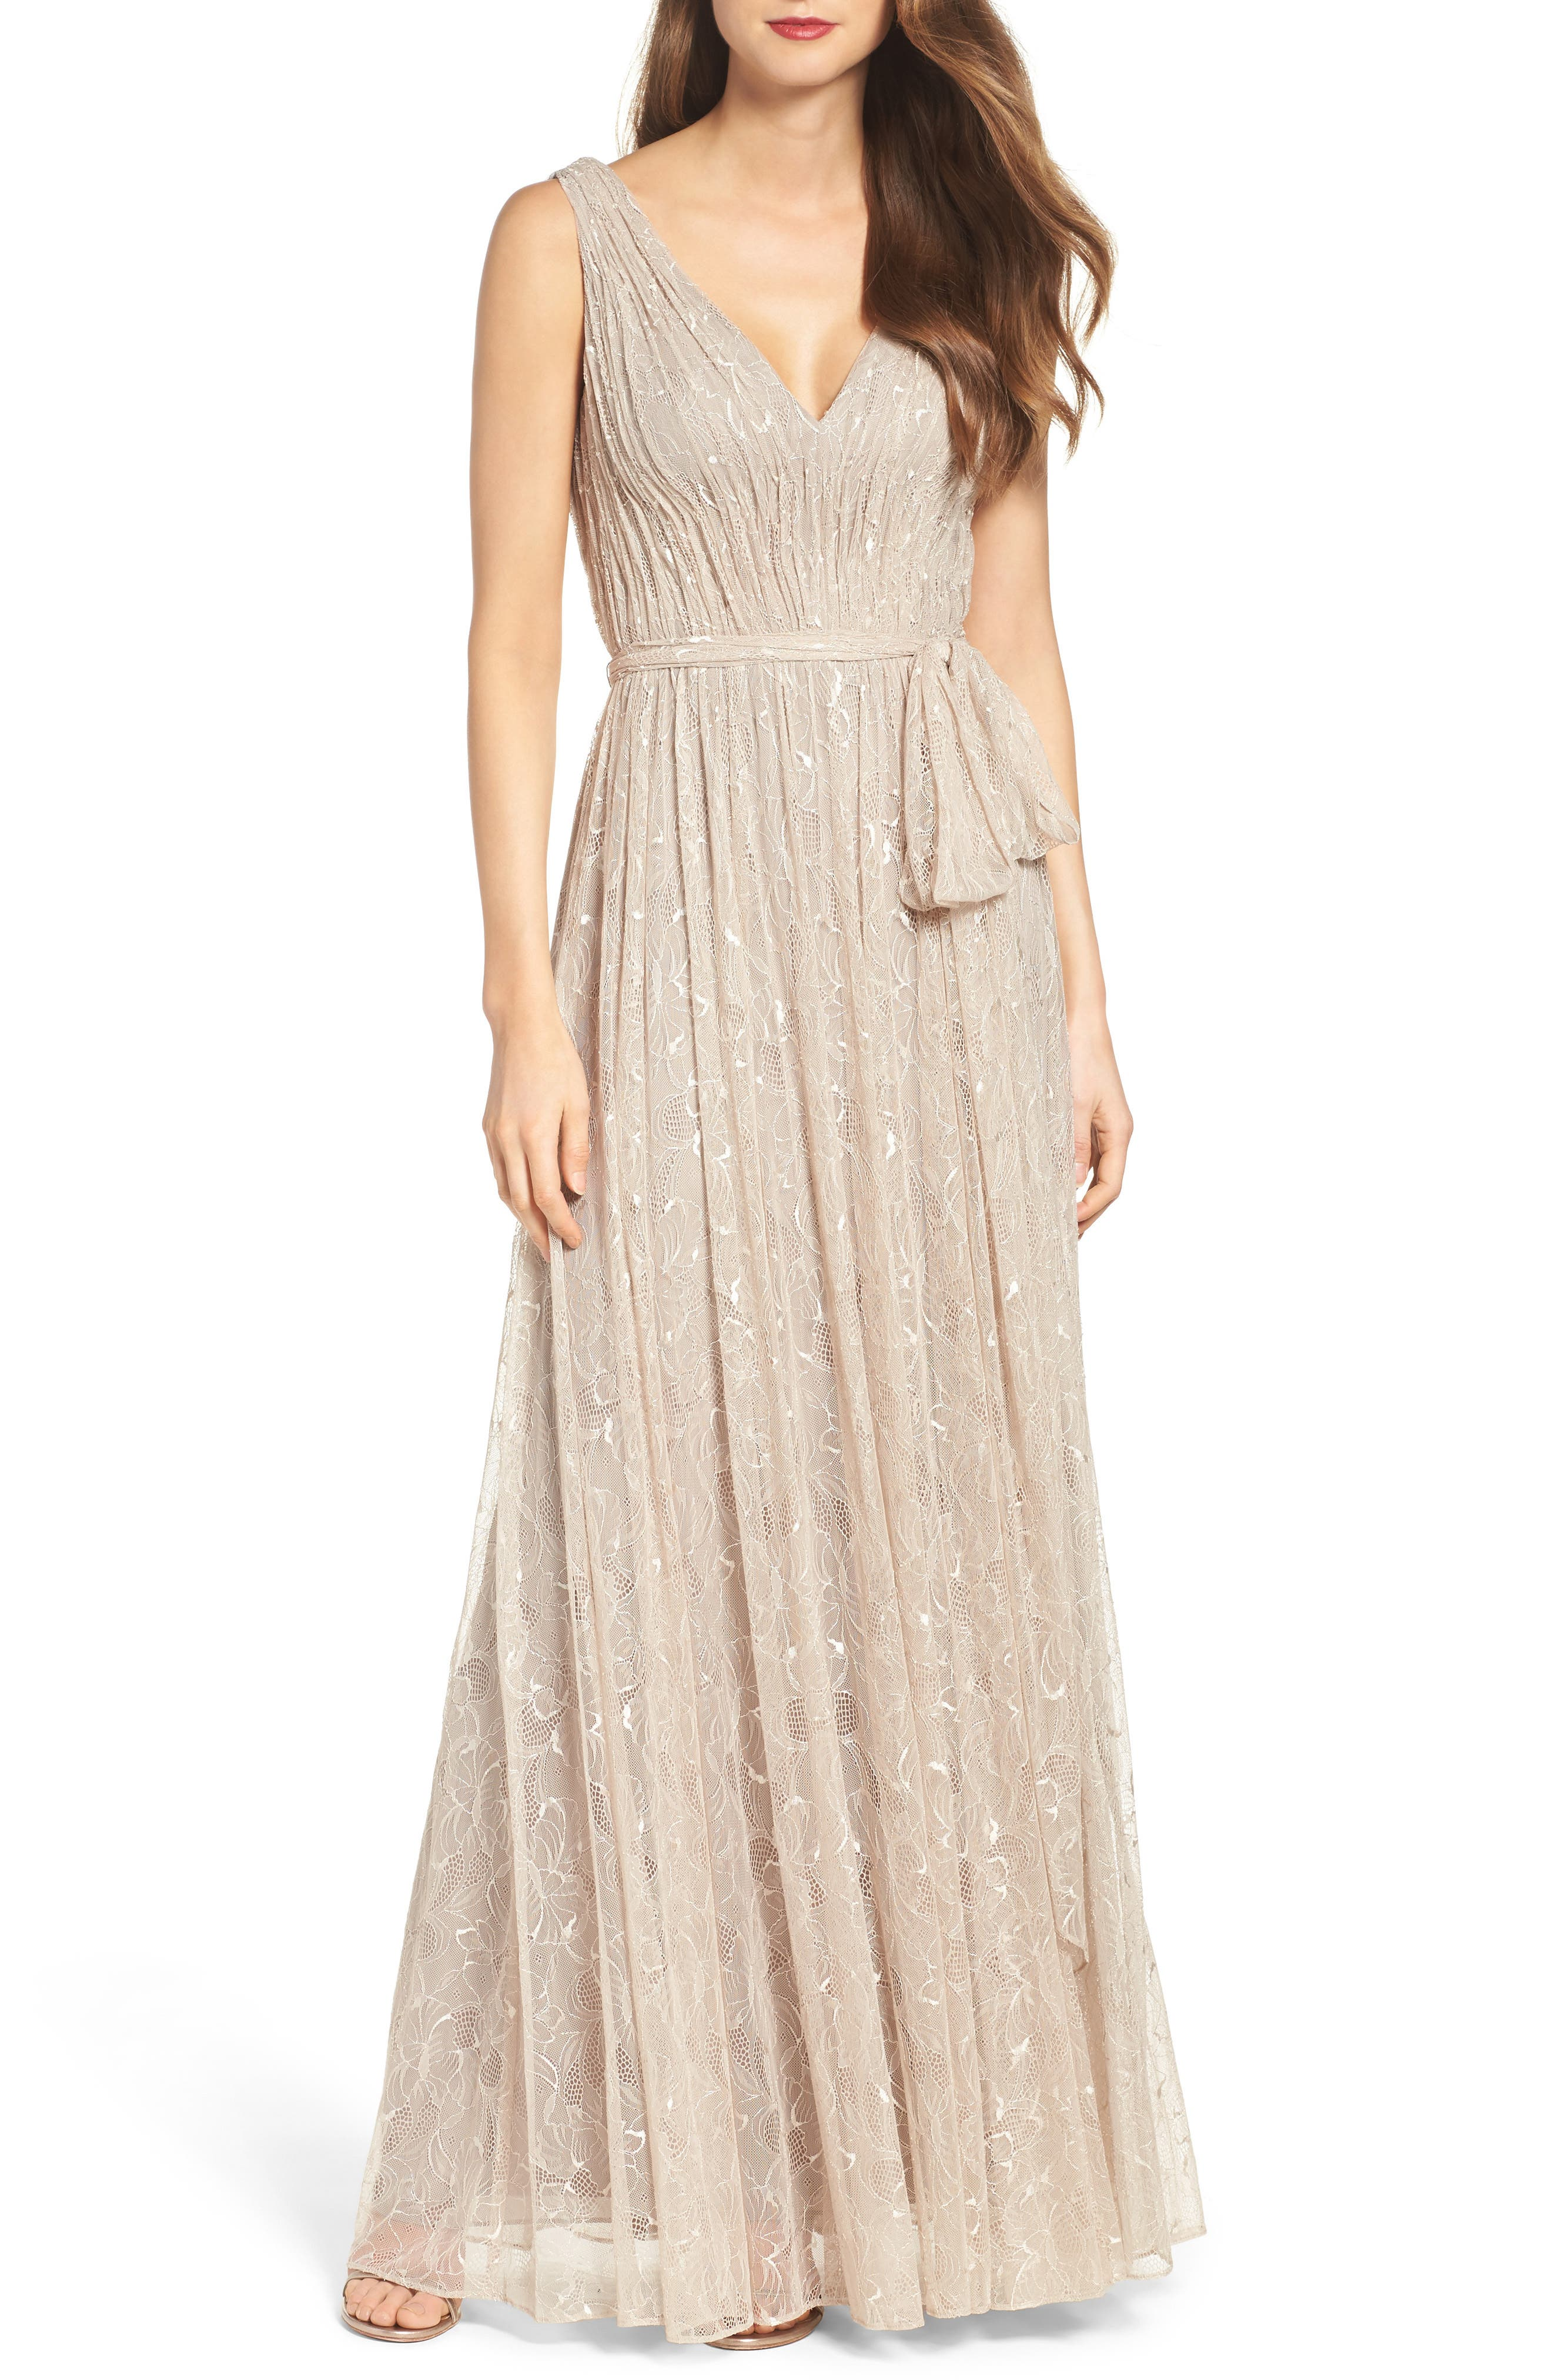 Alternate Image 1 Selected - Vera Wang Lace Fit & Flare Gown